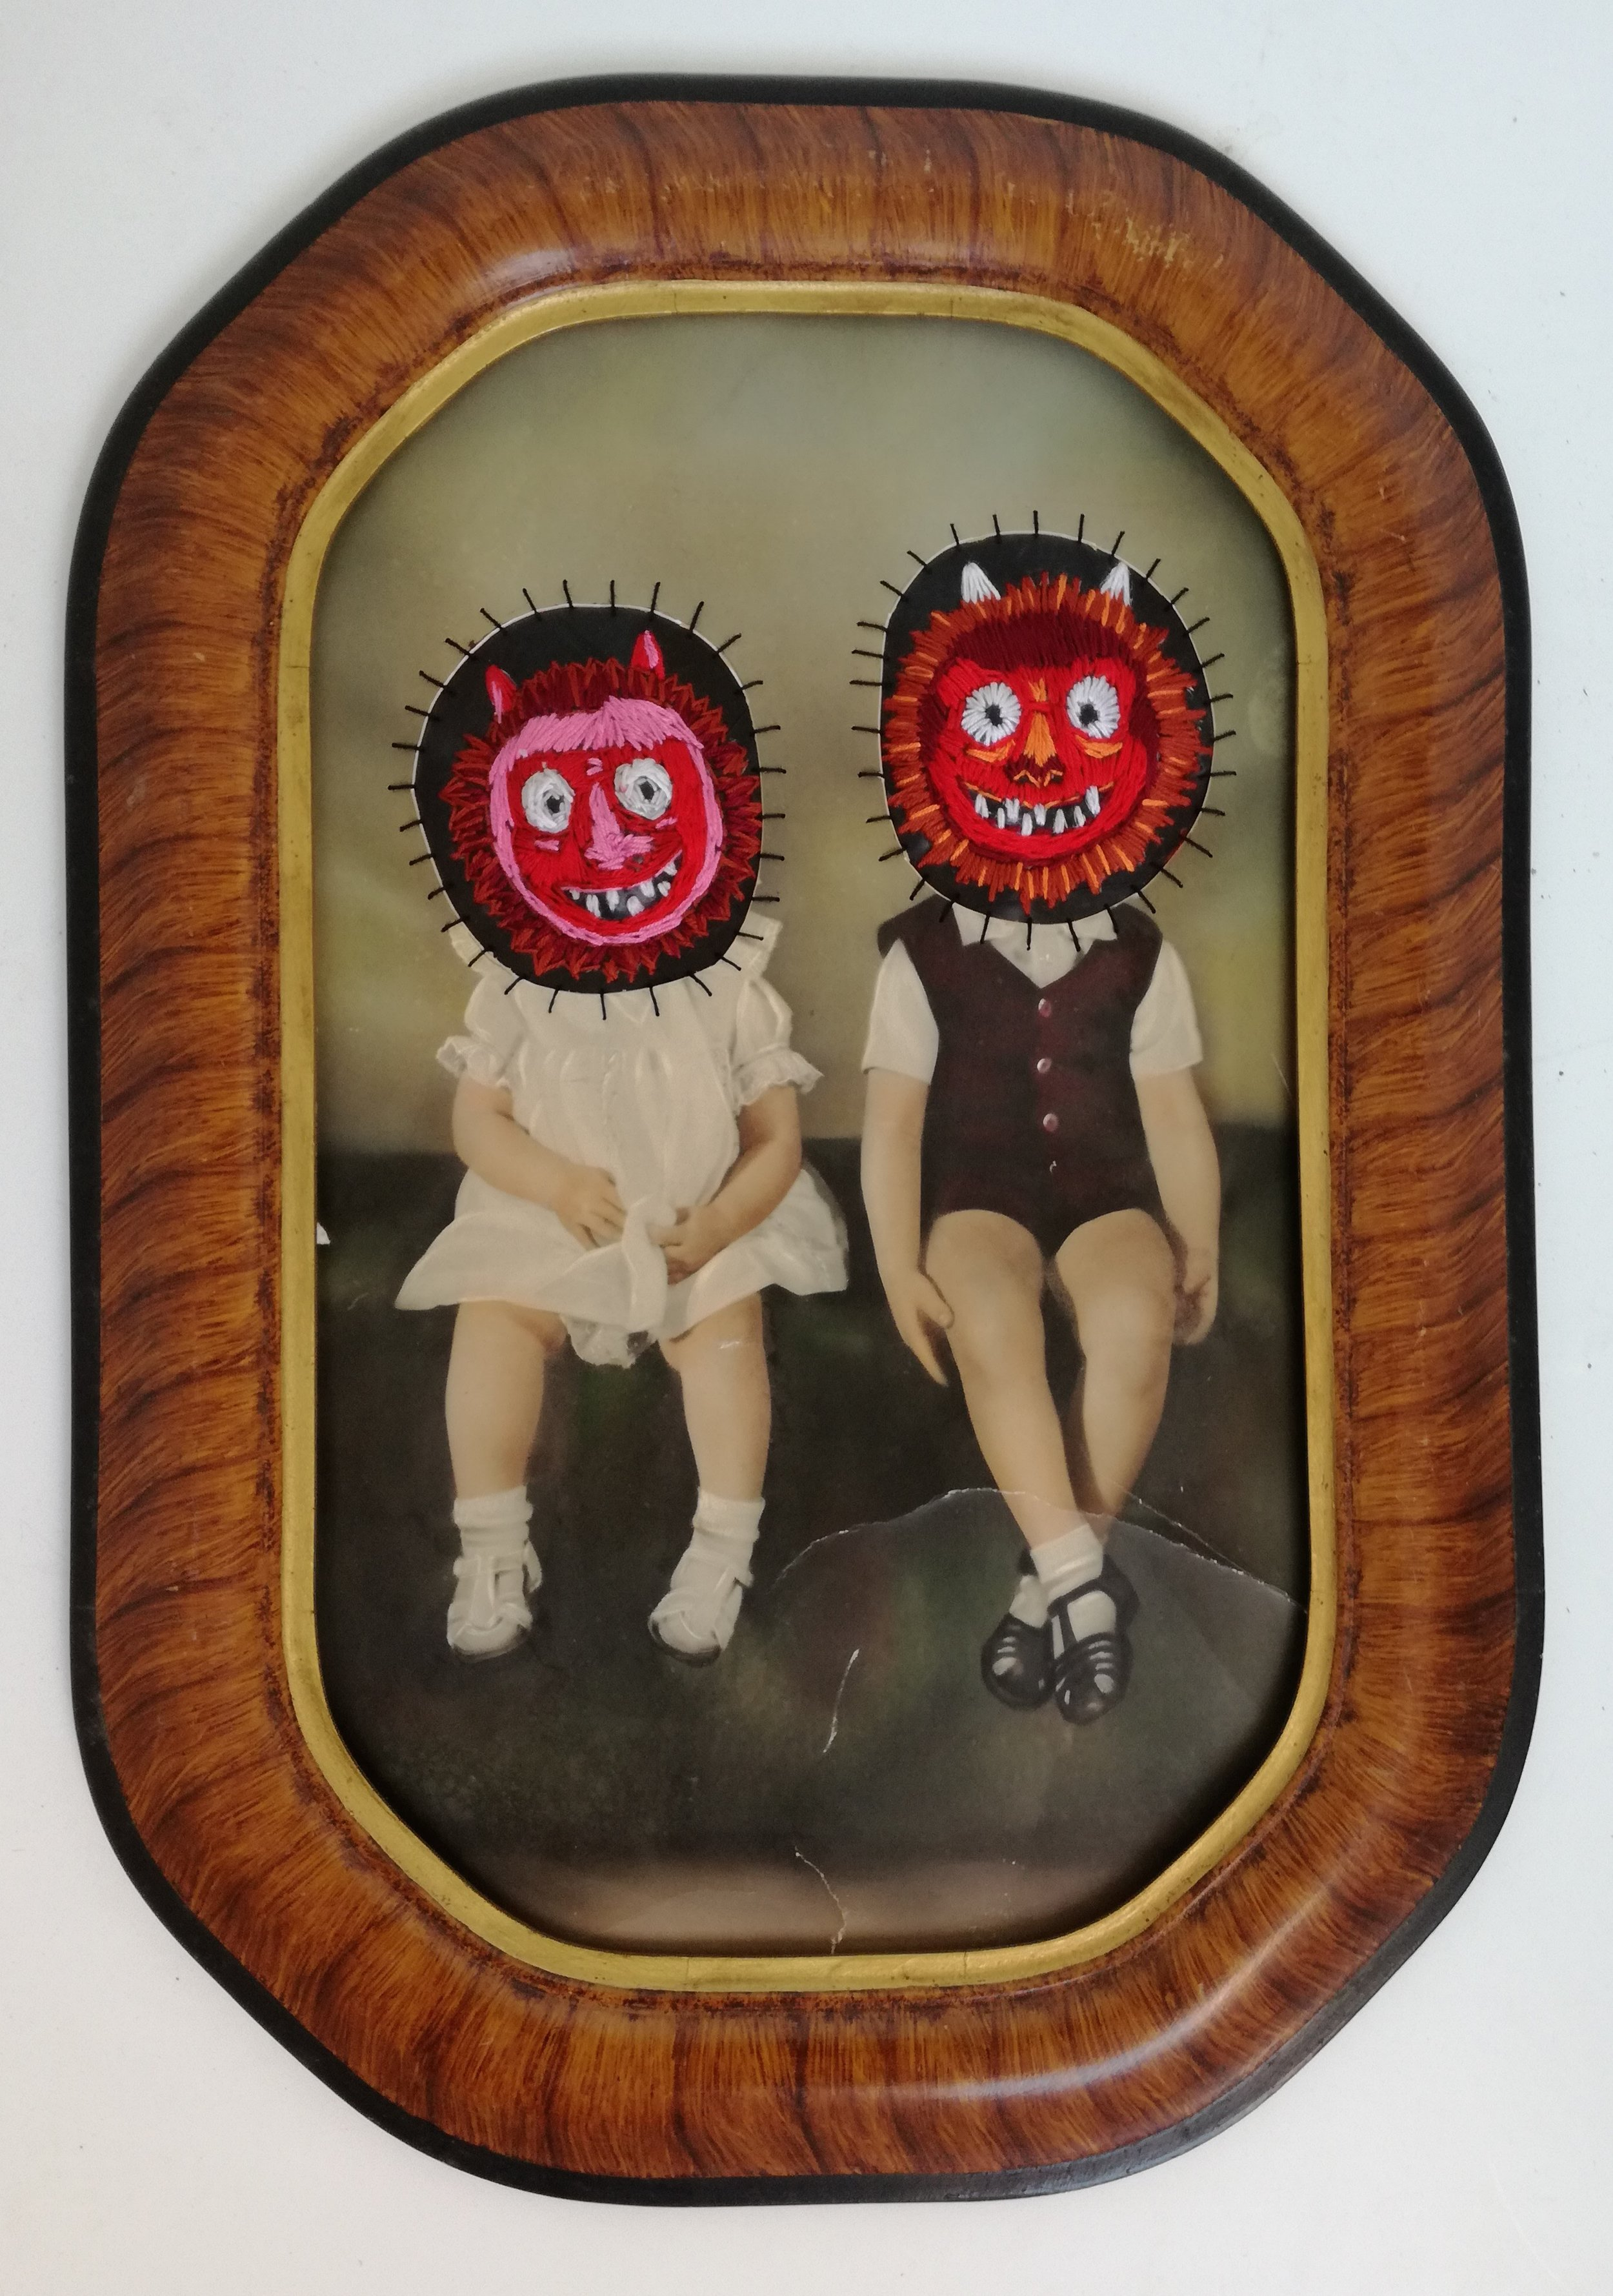 Two Little Ogres - Altered Vintage Photograph, Cotton Thread, Rubber530 x 330 mm9800 ZAR